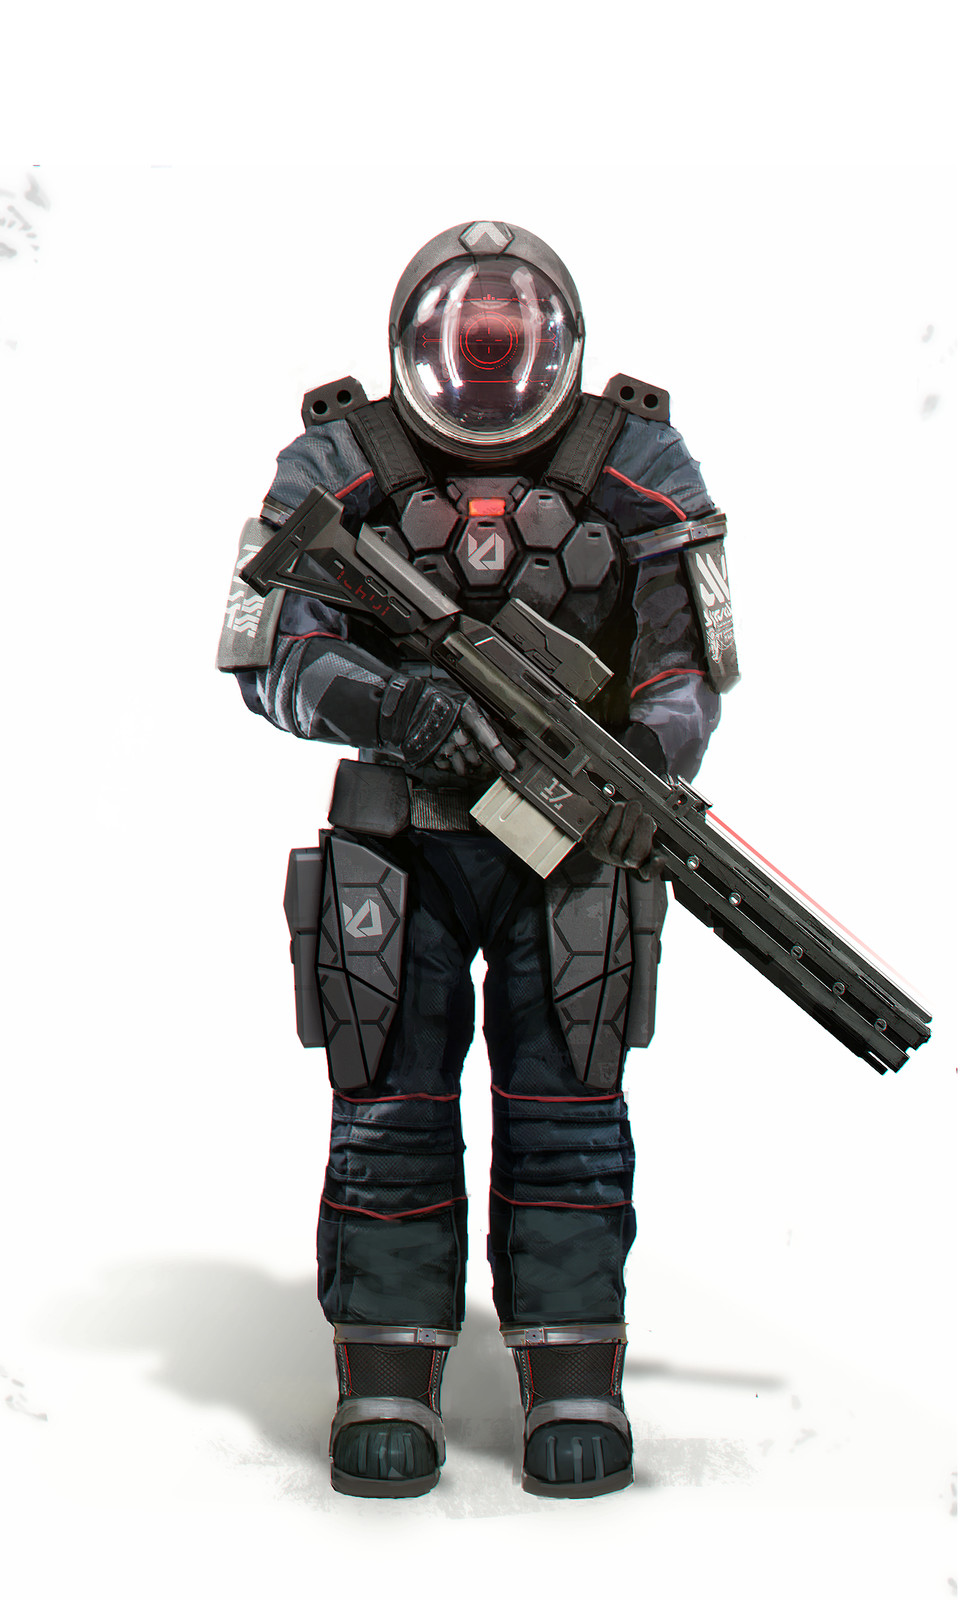 Space Soldier Concept